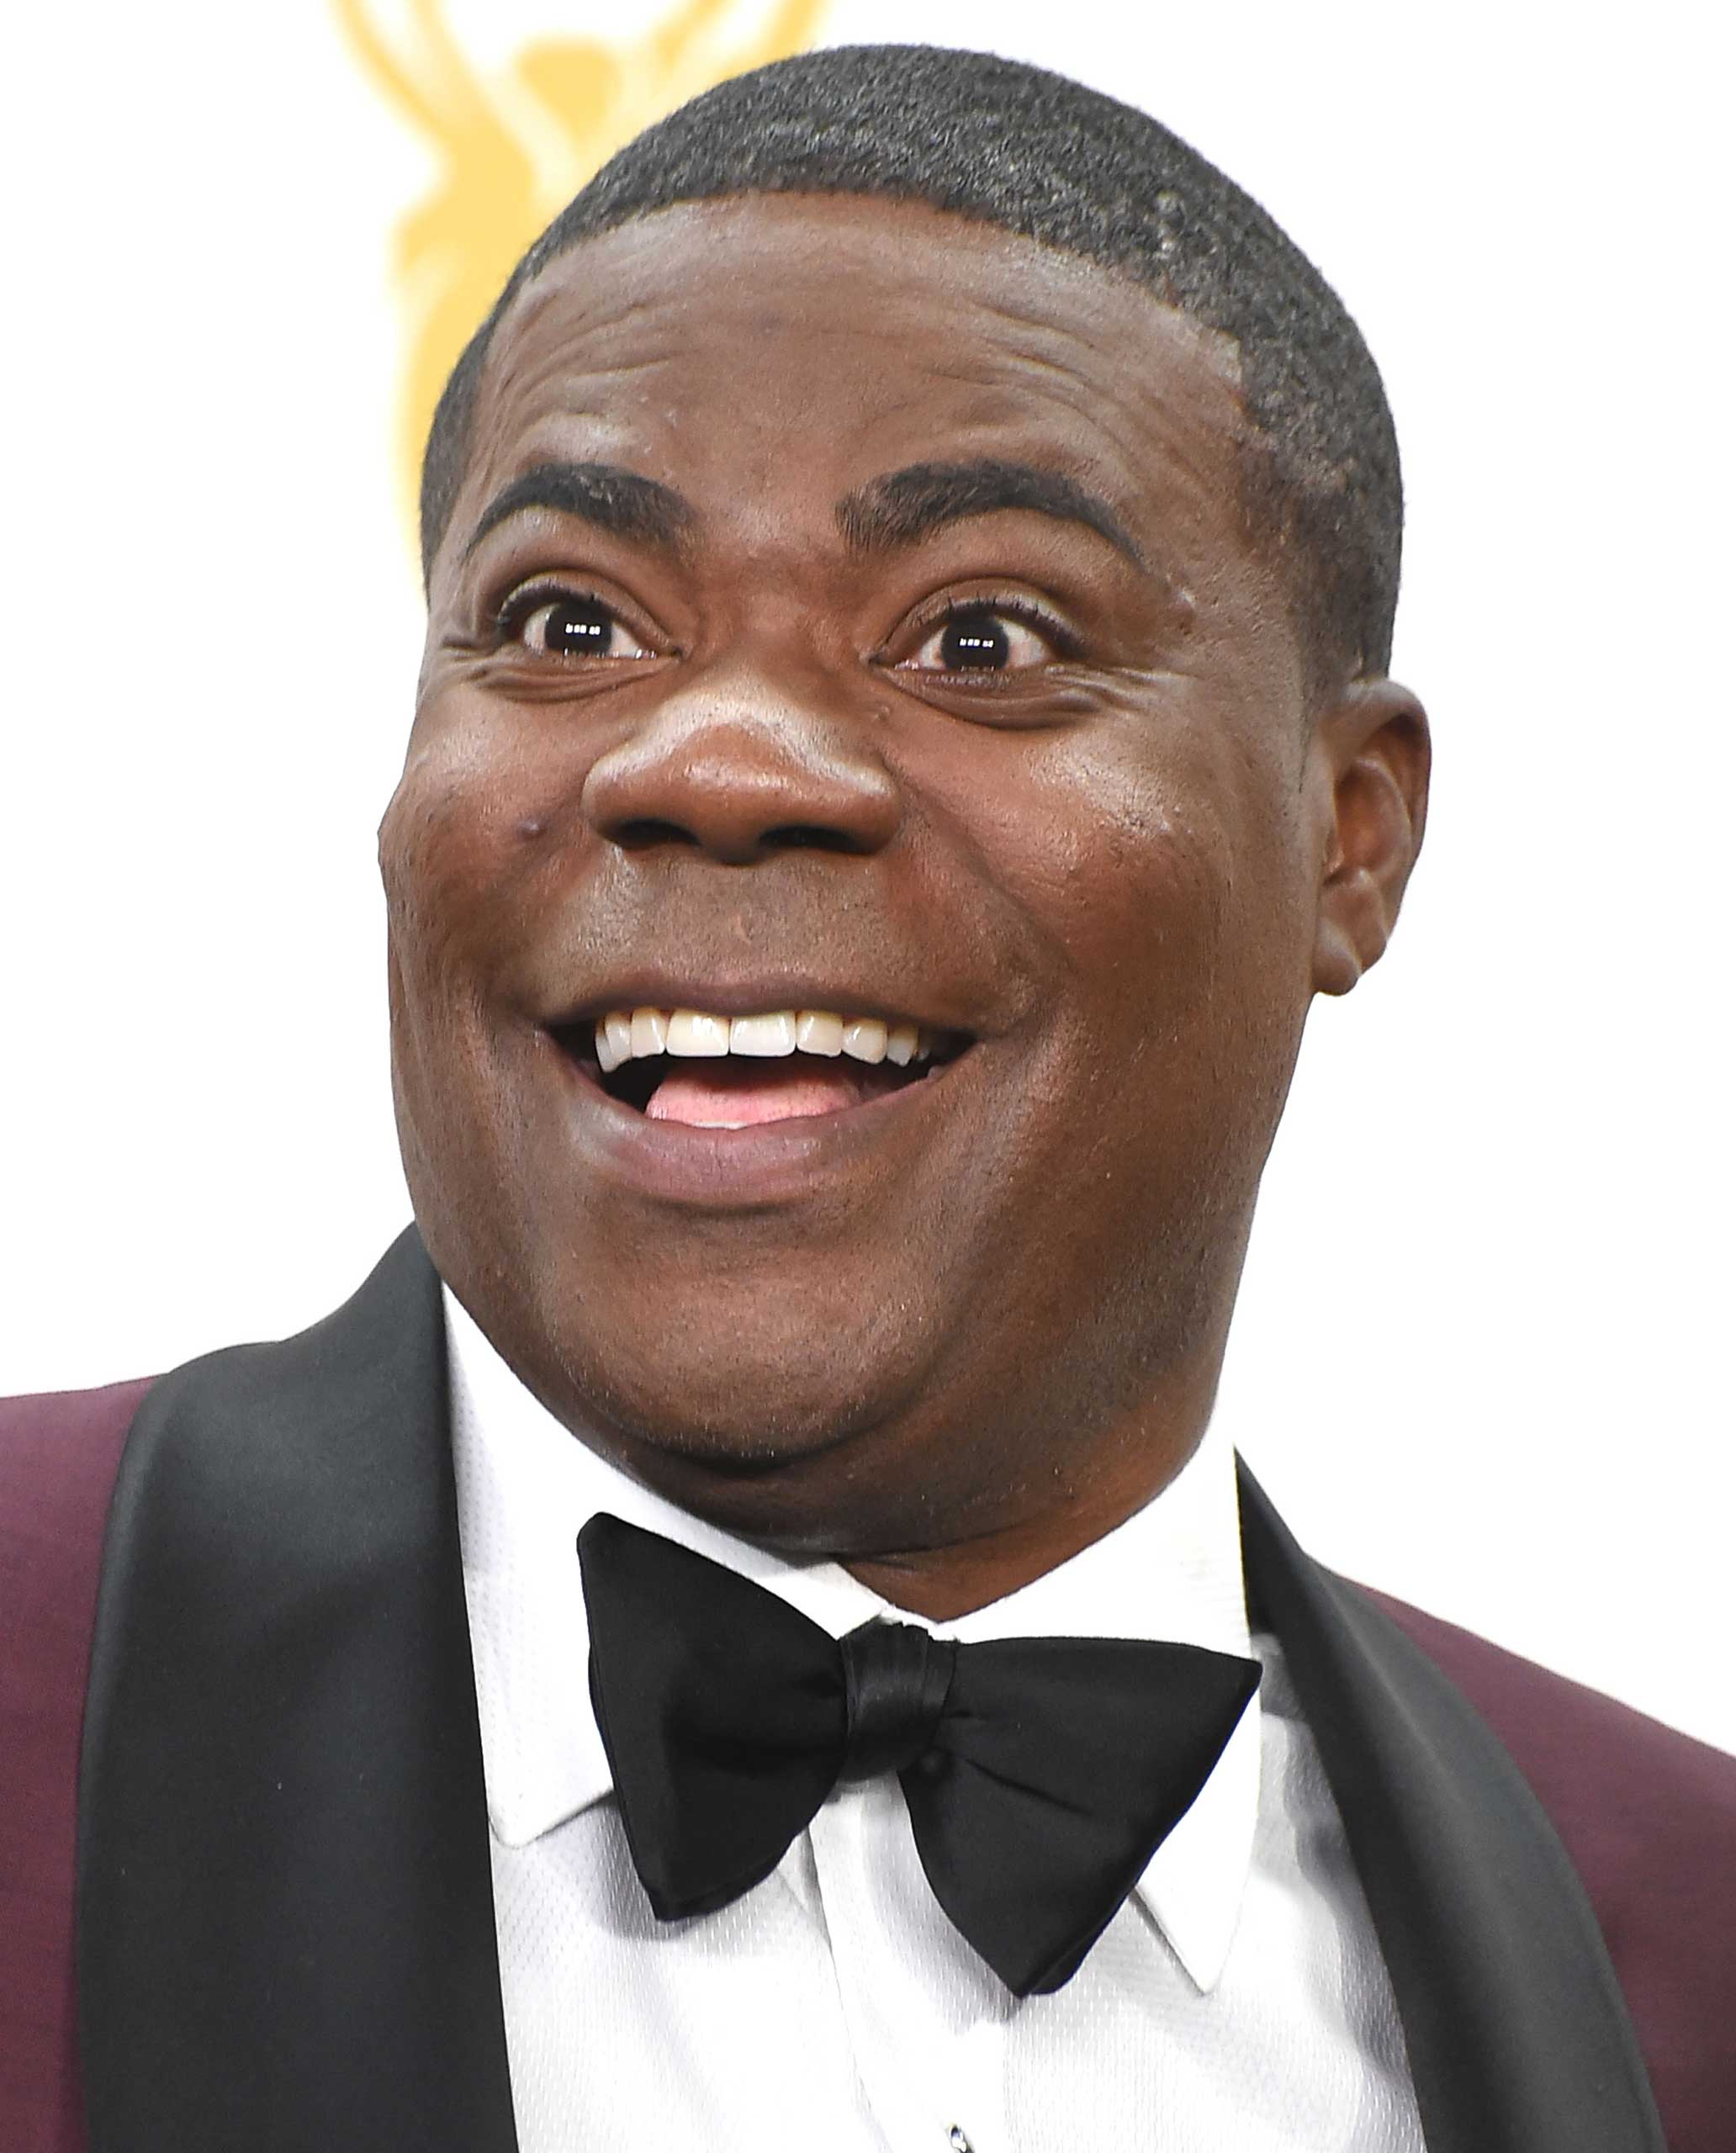 Tracy Morgan poses at the 67th Annual Primetime Emmy Awards at Microsoft Theater in Los Angeles, on Sept. 20, 2015.